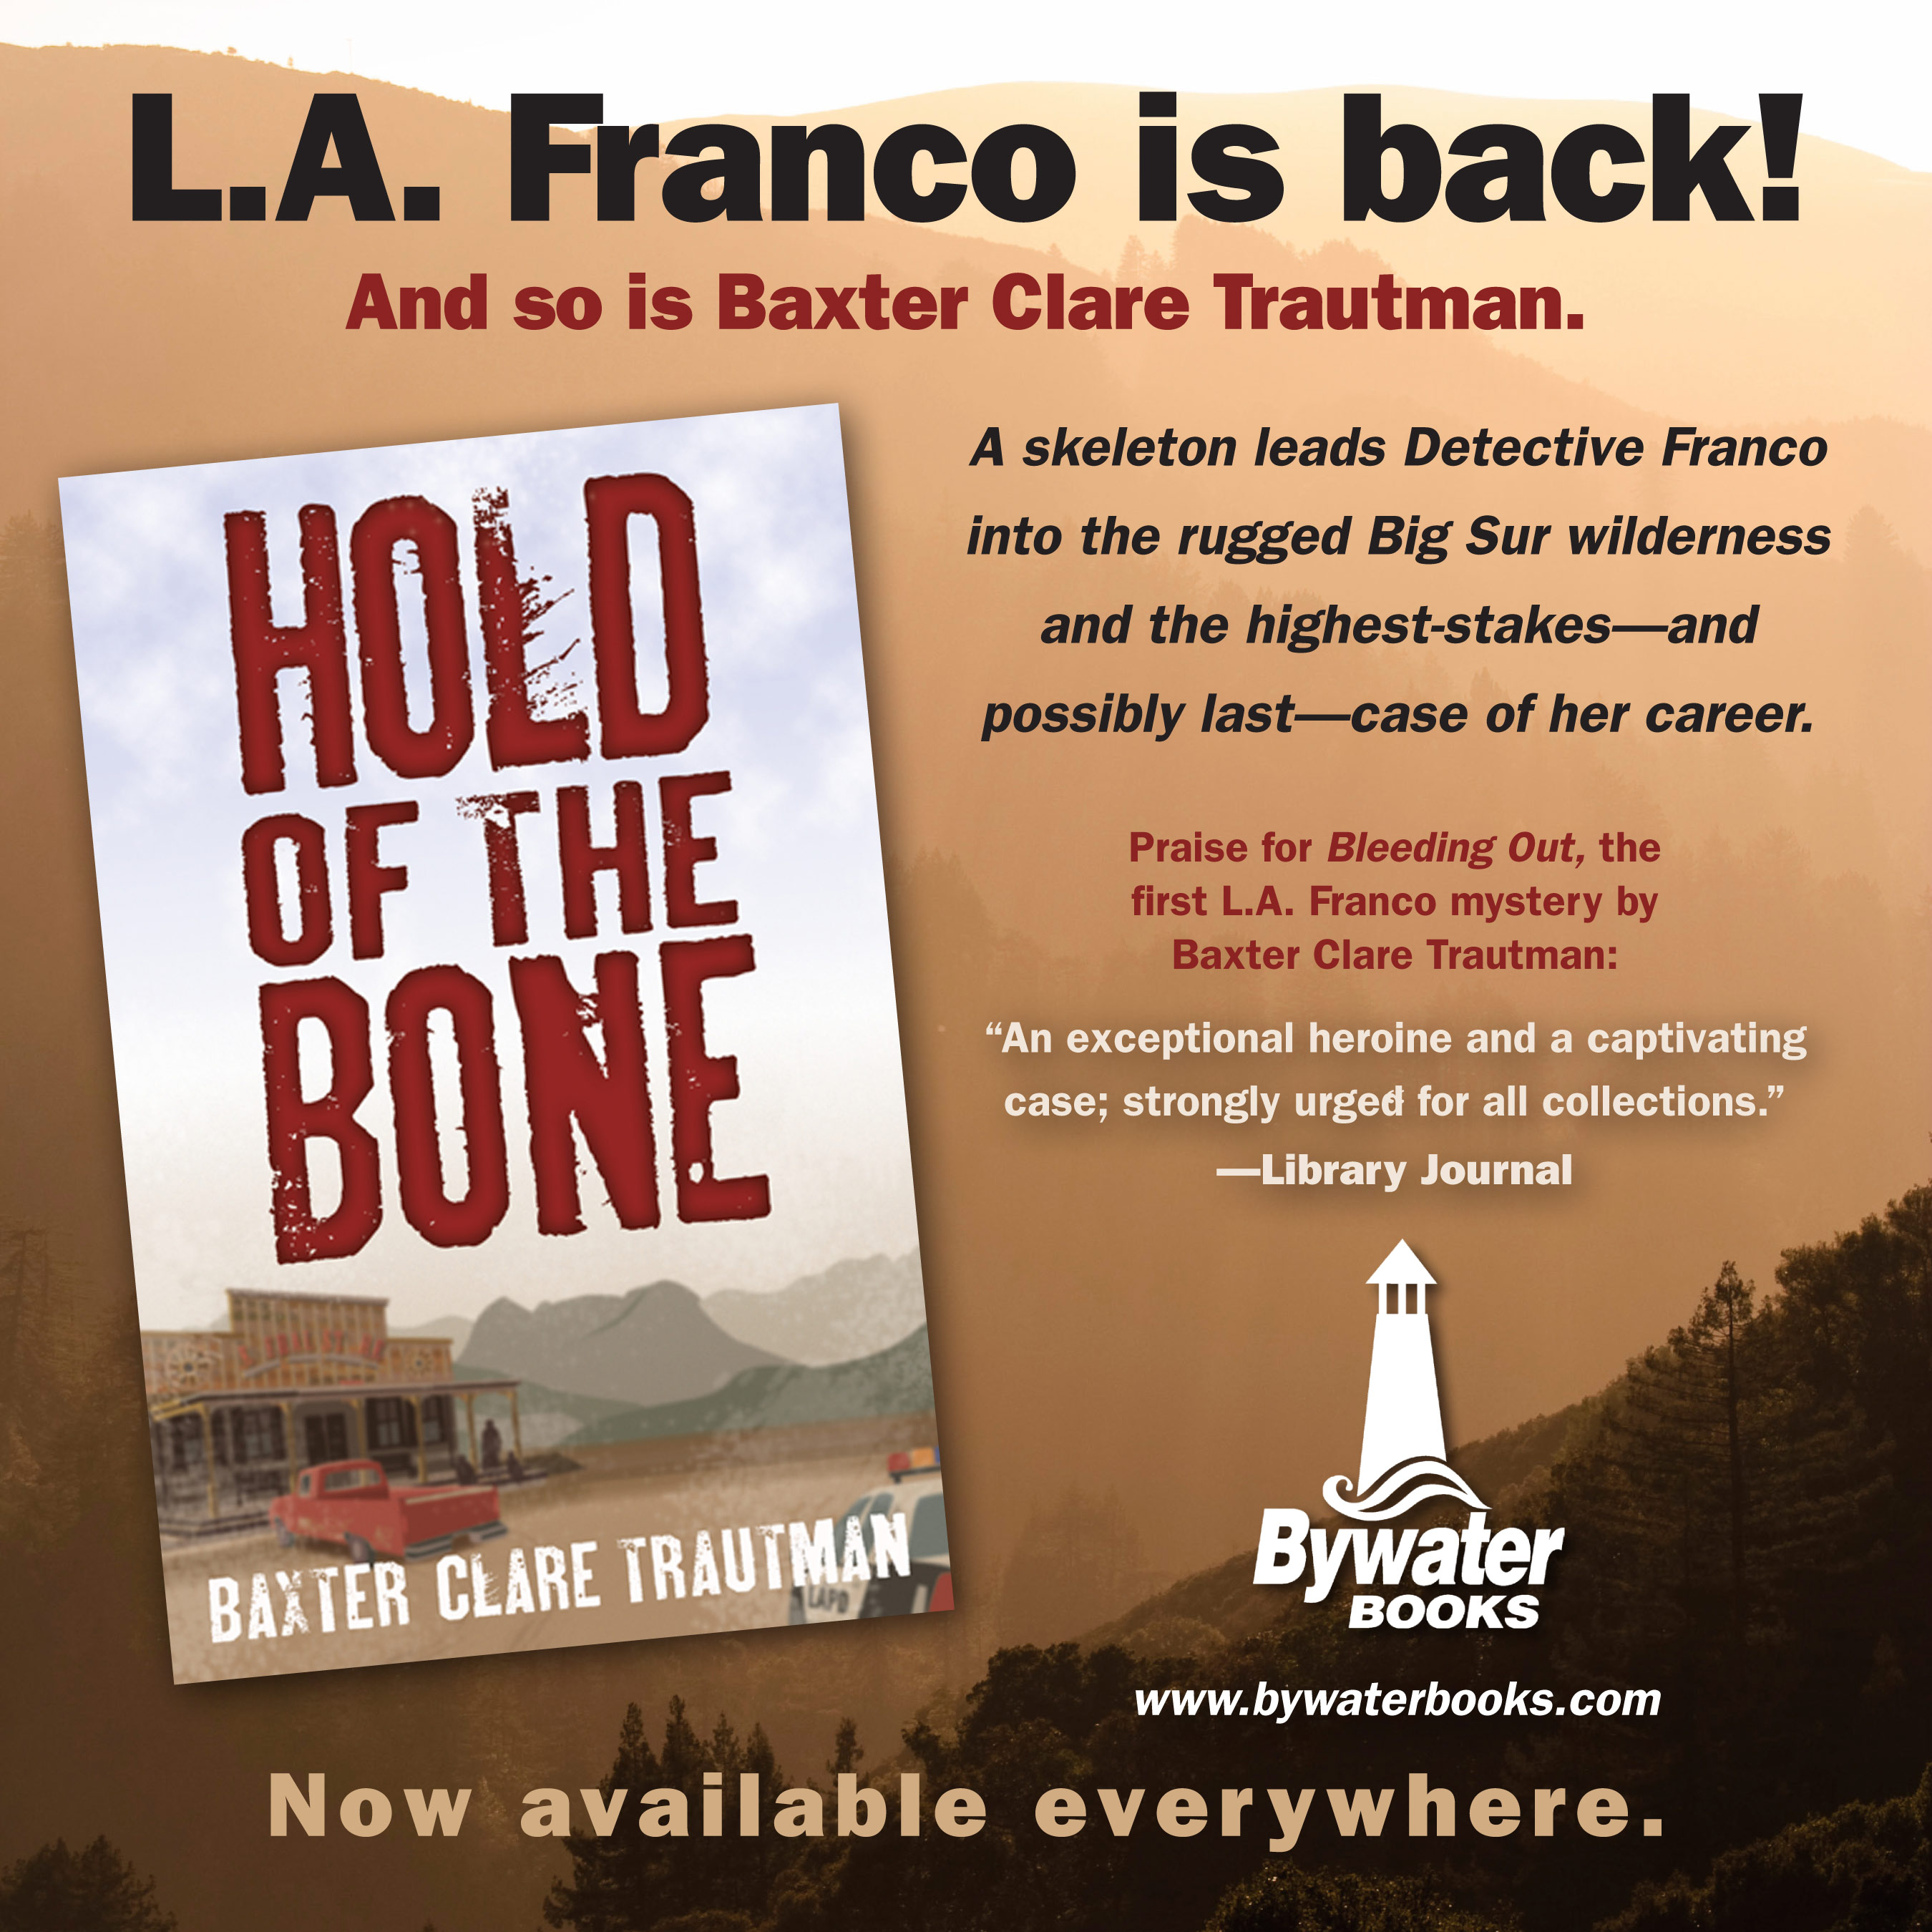 Baxter Clare Trautman is a Lambda finalist for her LA Franco mystery  series. She grew up half wild in the Central American tropics, moved back  to the States ...